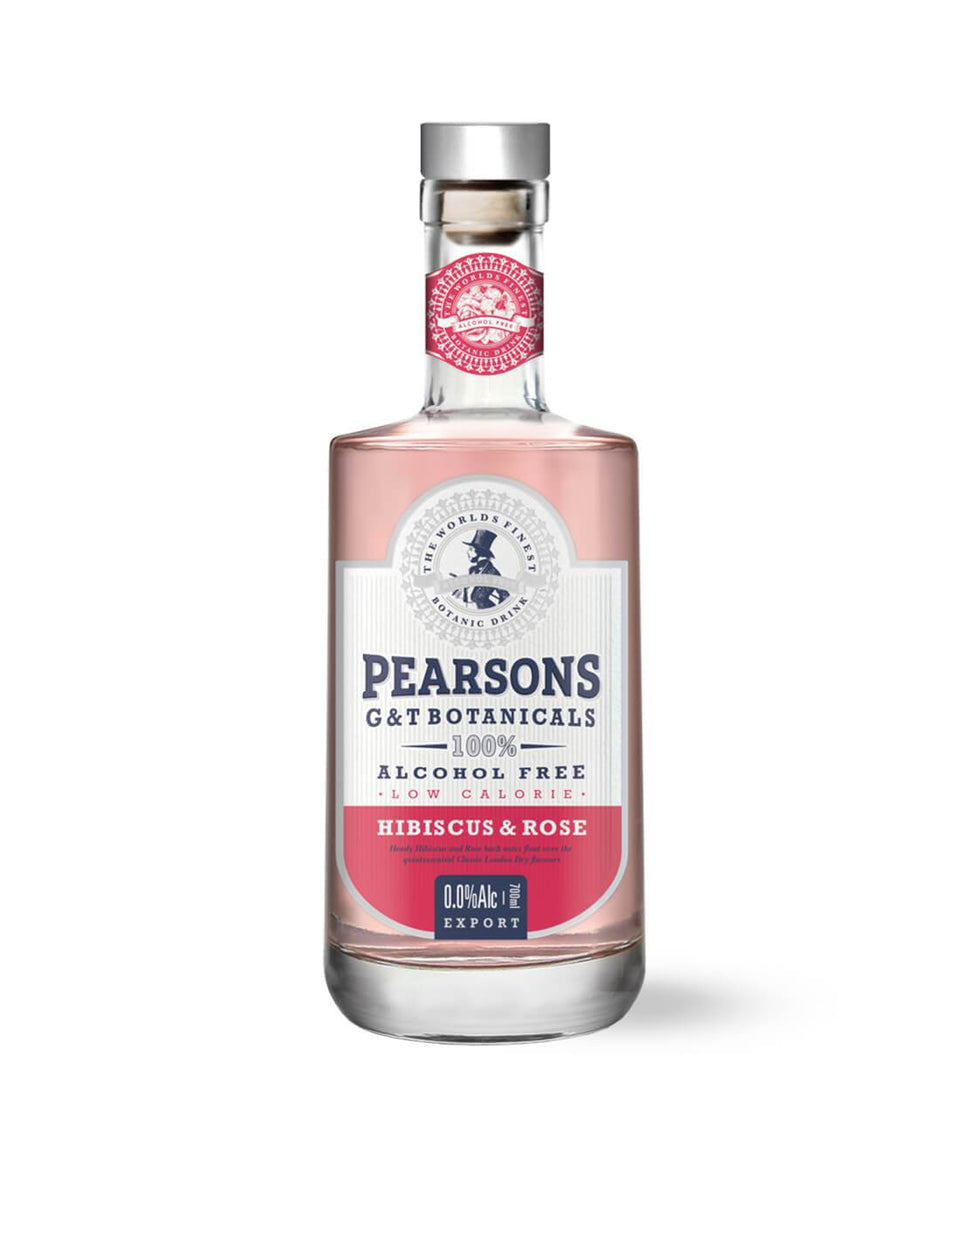 Pearsons G&T Botanicals Alcohol-Free Hibiscus & Rose 700mL